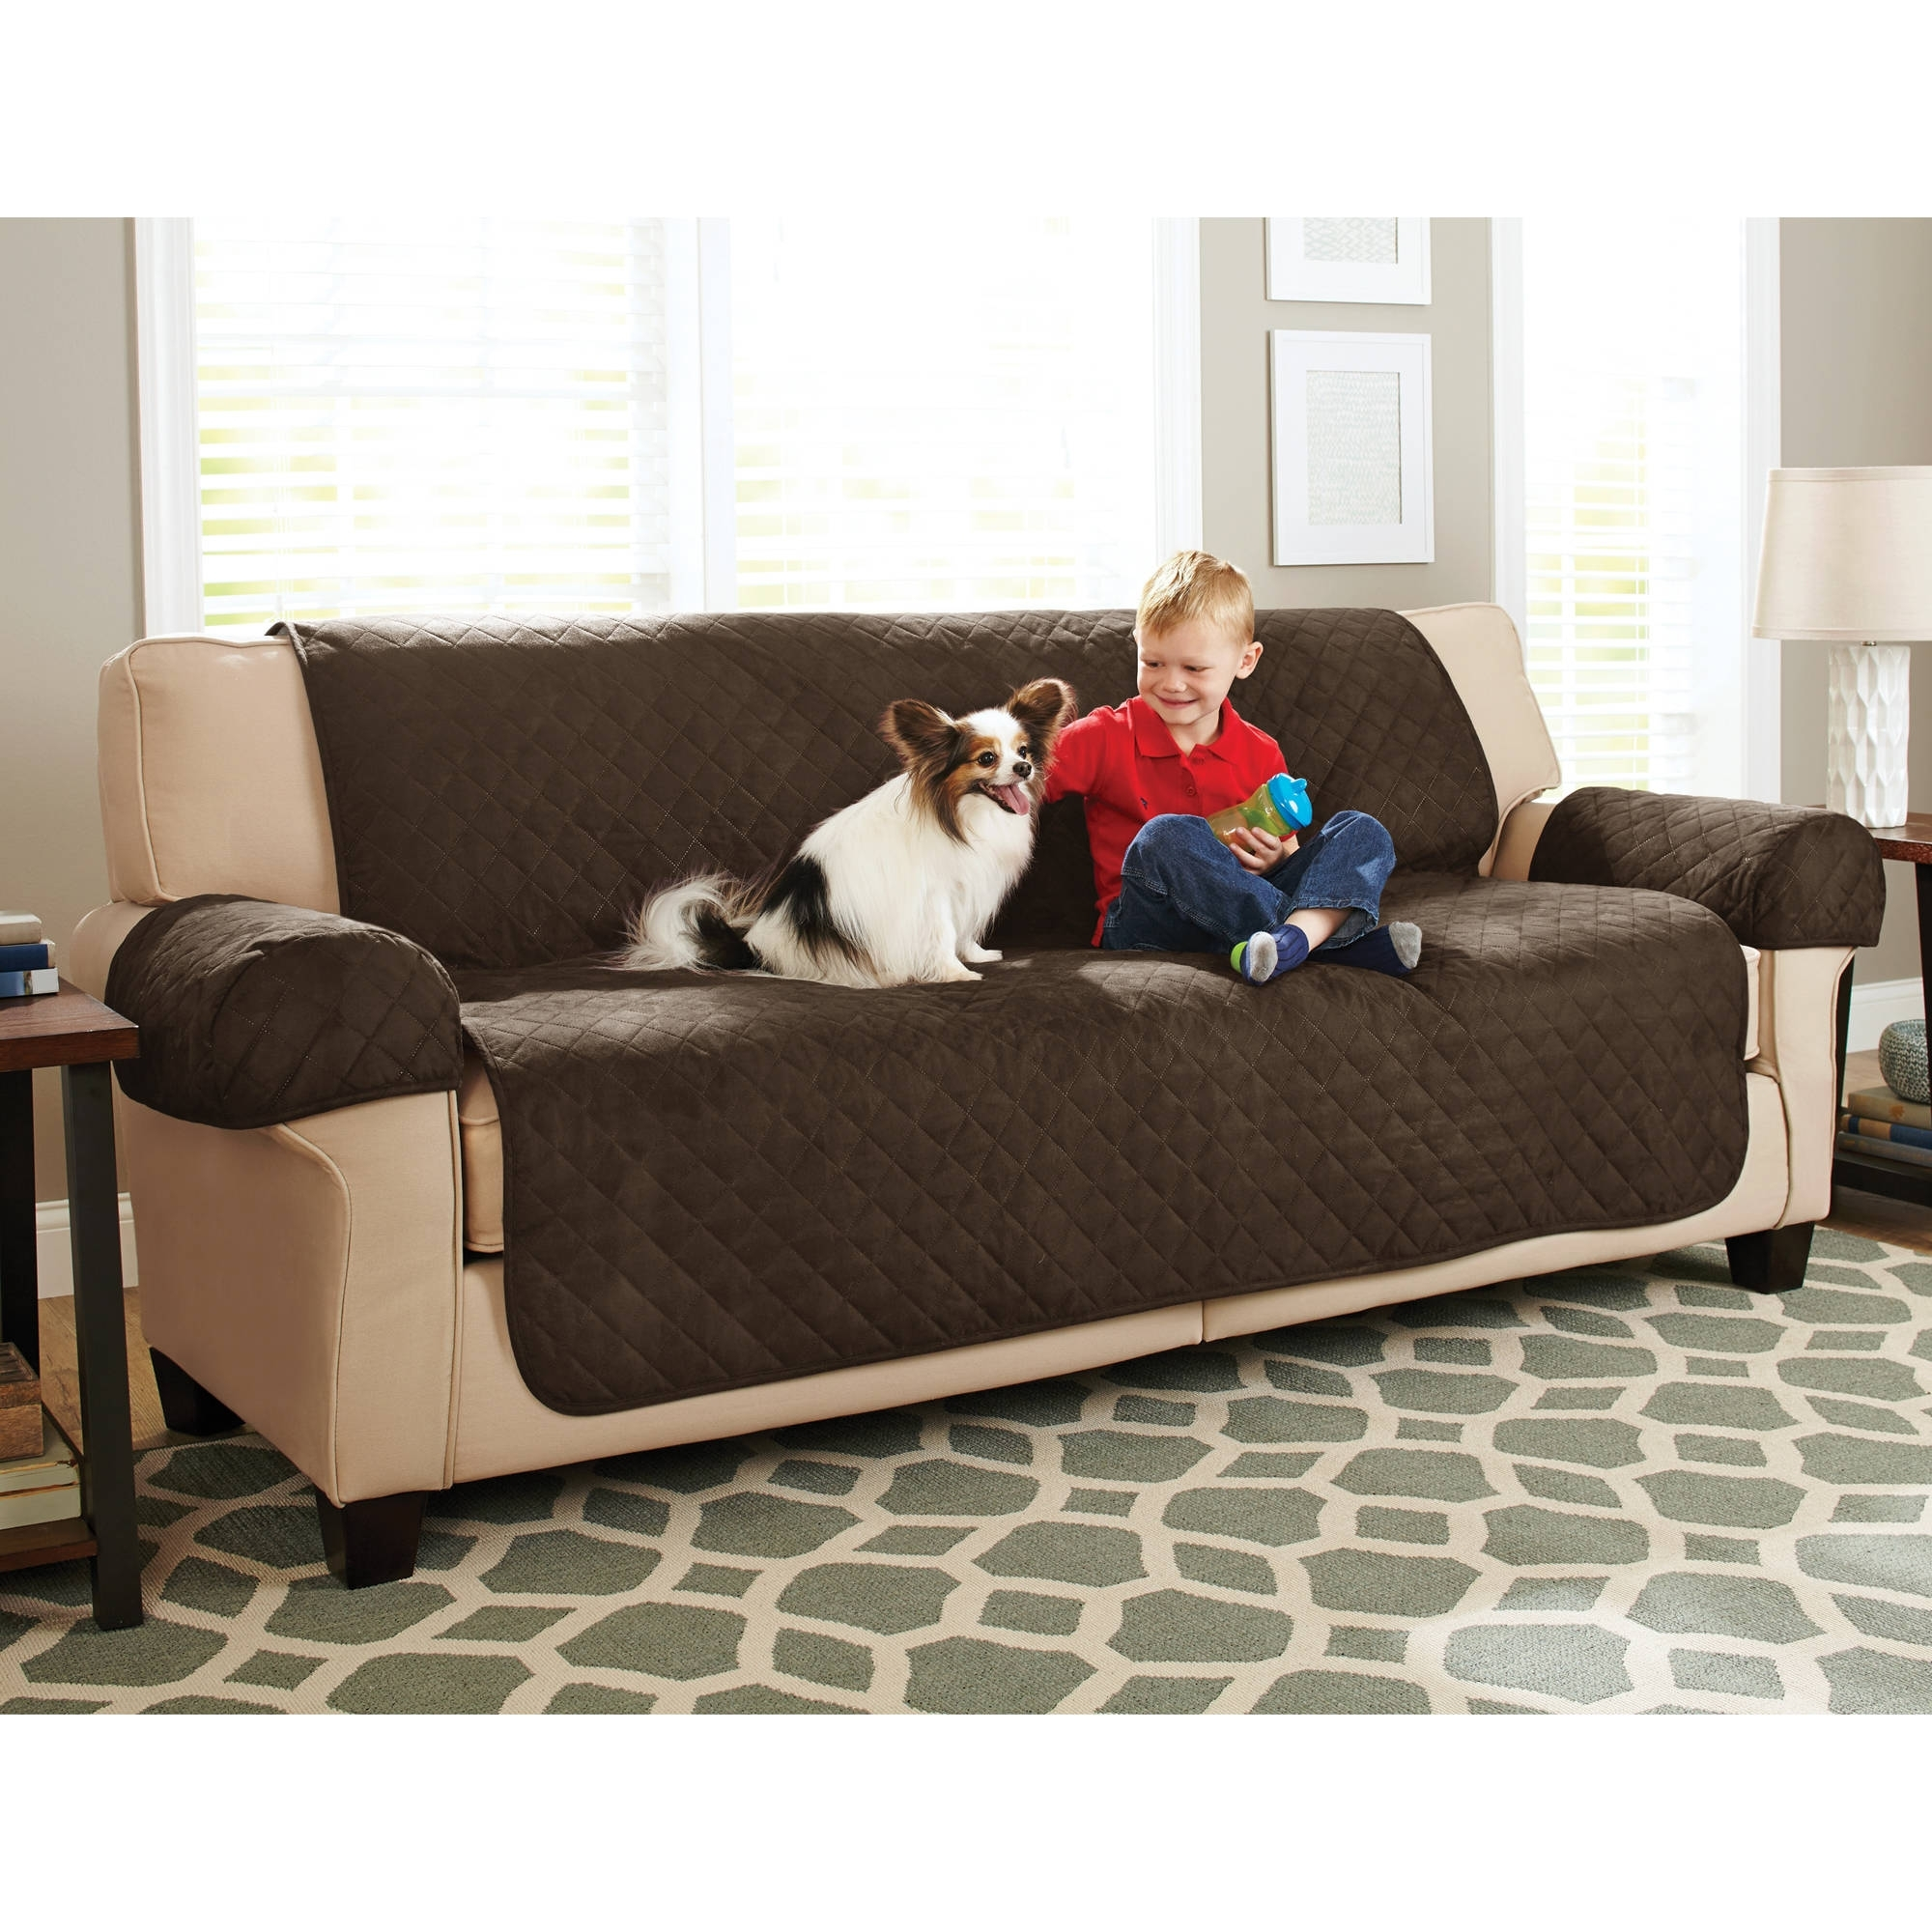 Newest Better Homes And Gardens Waterproof Non Slip Faux Suede Pet In Faux Suede Sofas (View 18 of 20)